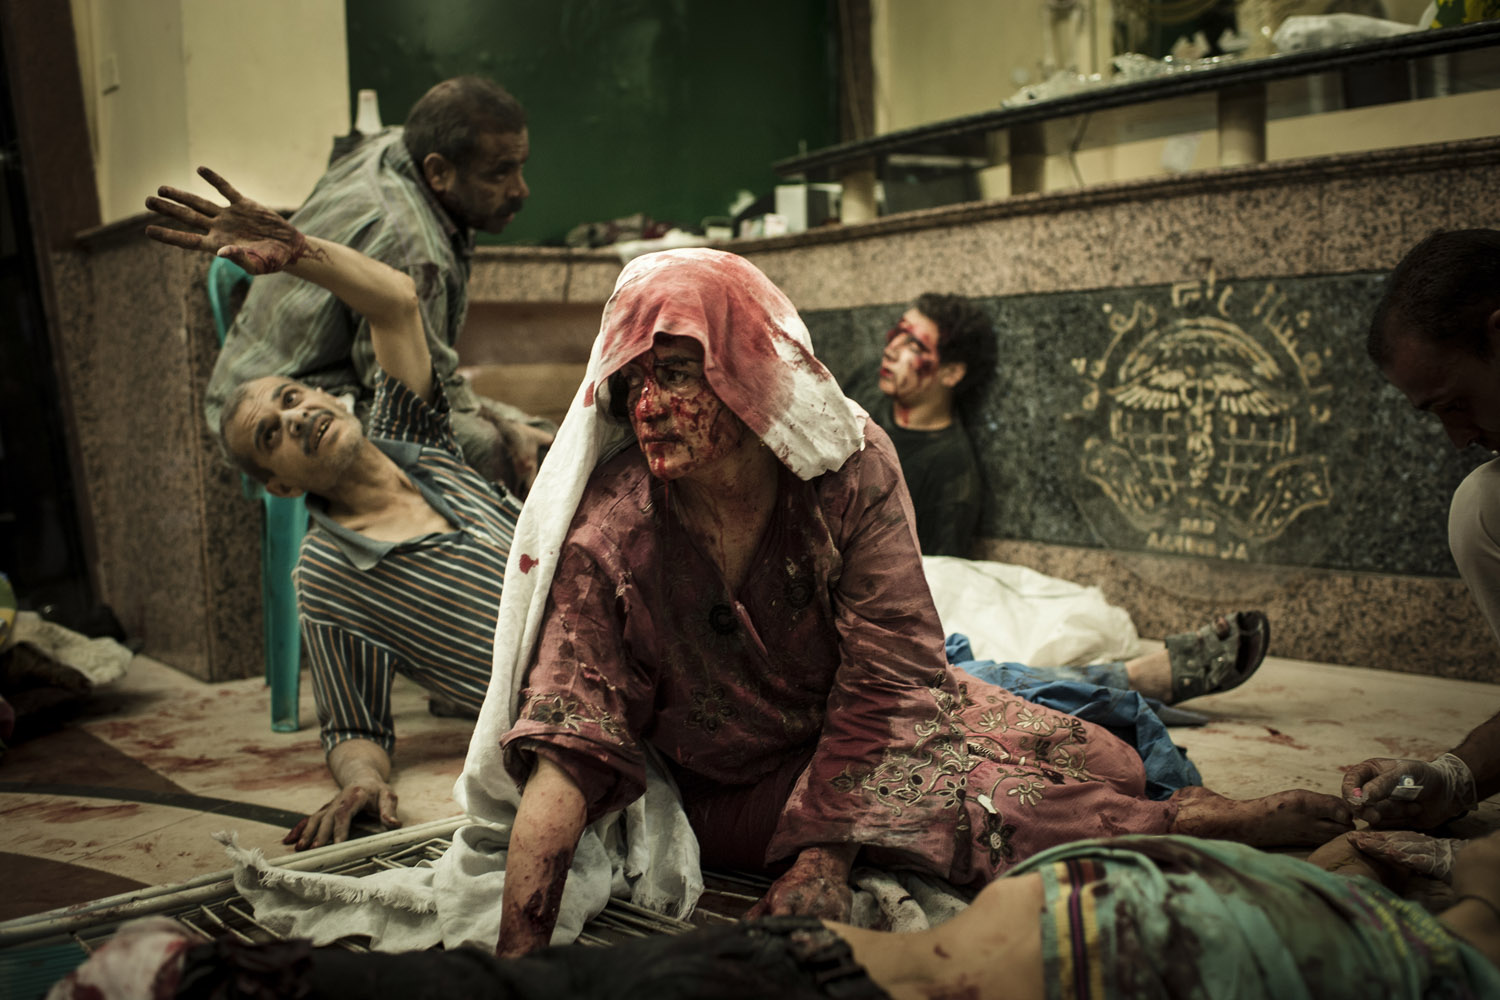 Edouard Elias                               Wounded civilians are seen in a field hospital in Aleppo after an air strike destroyed a bakery, killing 20 and injuring 80.                                I shot this on the night of Aug. 21. A bakery had been bombed, and cars carried the wounded civilians to Dar al-Shifa Hospital. It was a difficult moment, working among the wounded and dead. It was my first war, and I had the responsibility to make pictures at this moment, even if I wouldn't go inside the hospital.                                Looking back at the picture, I remember how I felt sitting outside the hospital with my emotions, near tears. When fighters were wounded, I understood — it's war. But civilian boys, children, women ... it wasn't the same feeling.